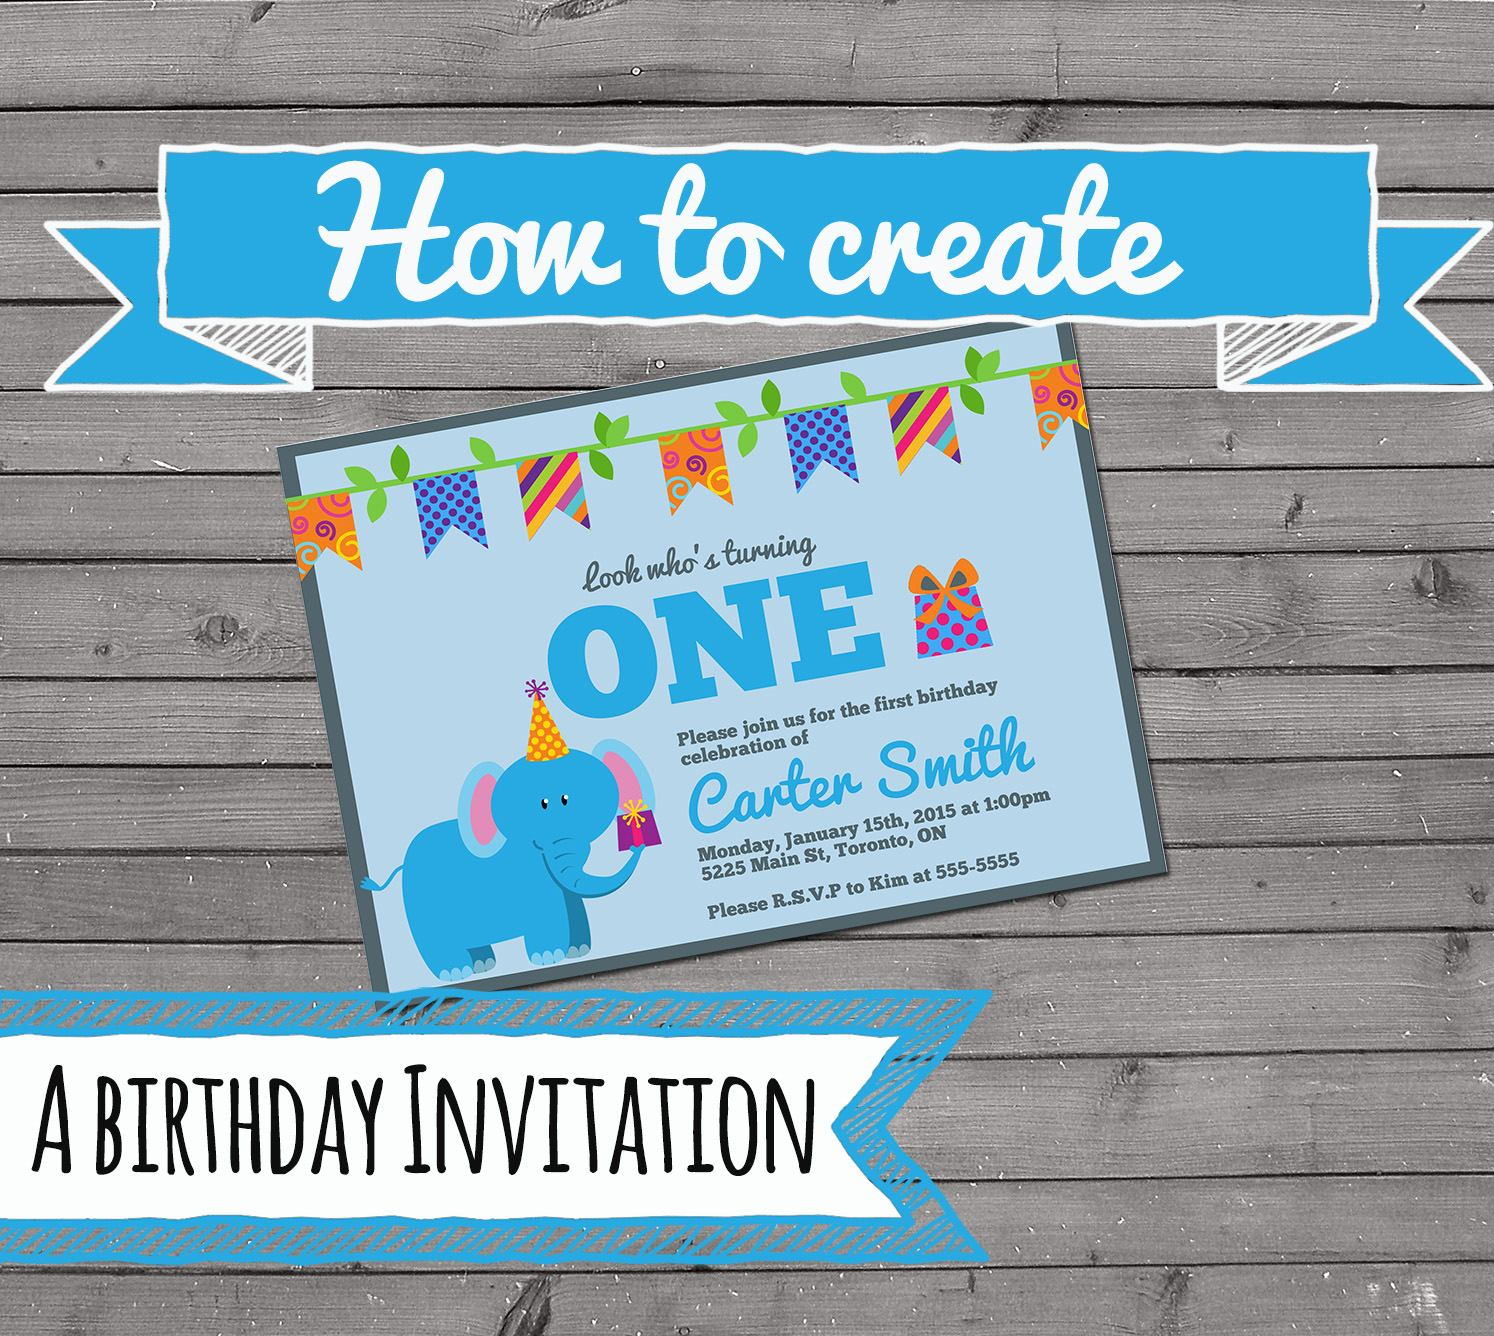 design your own photo birthday invitations ; design-your-own-invitation-card-fabulous-create-your-own-birthday-invitations-create-your-own-birthday-of-design-your-own-invitation-card